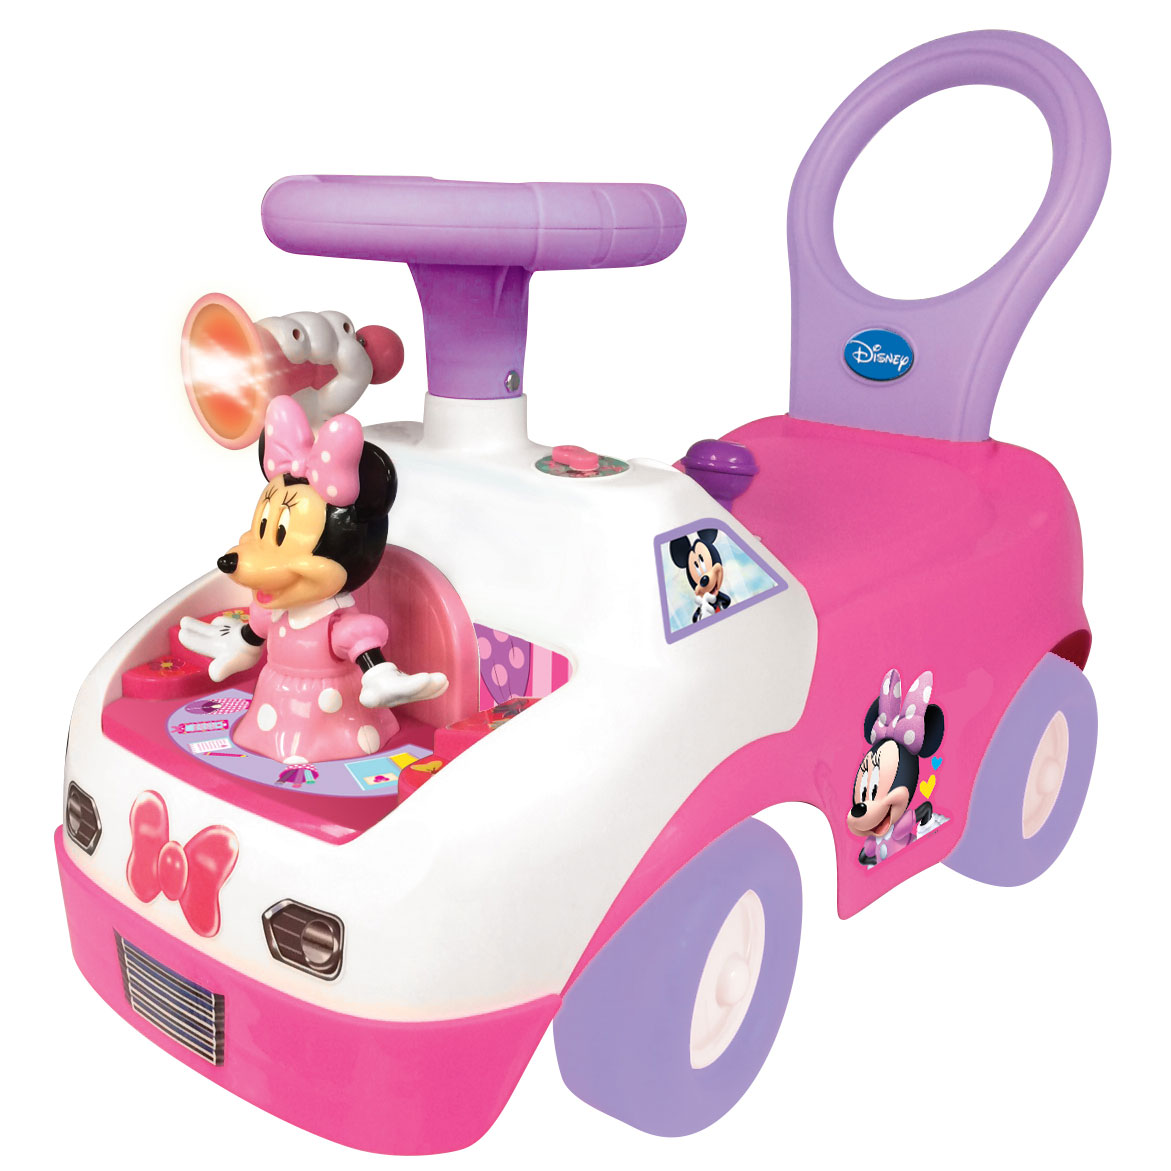 Kiddieland Minnie Mouse Dancing Activity Interactive Ride On Car with Sounds by Kiddieland